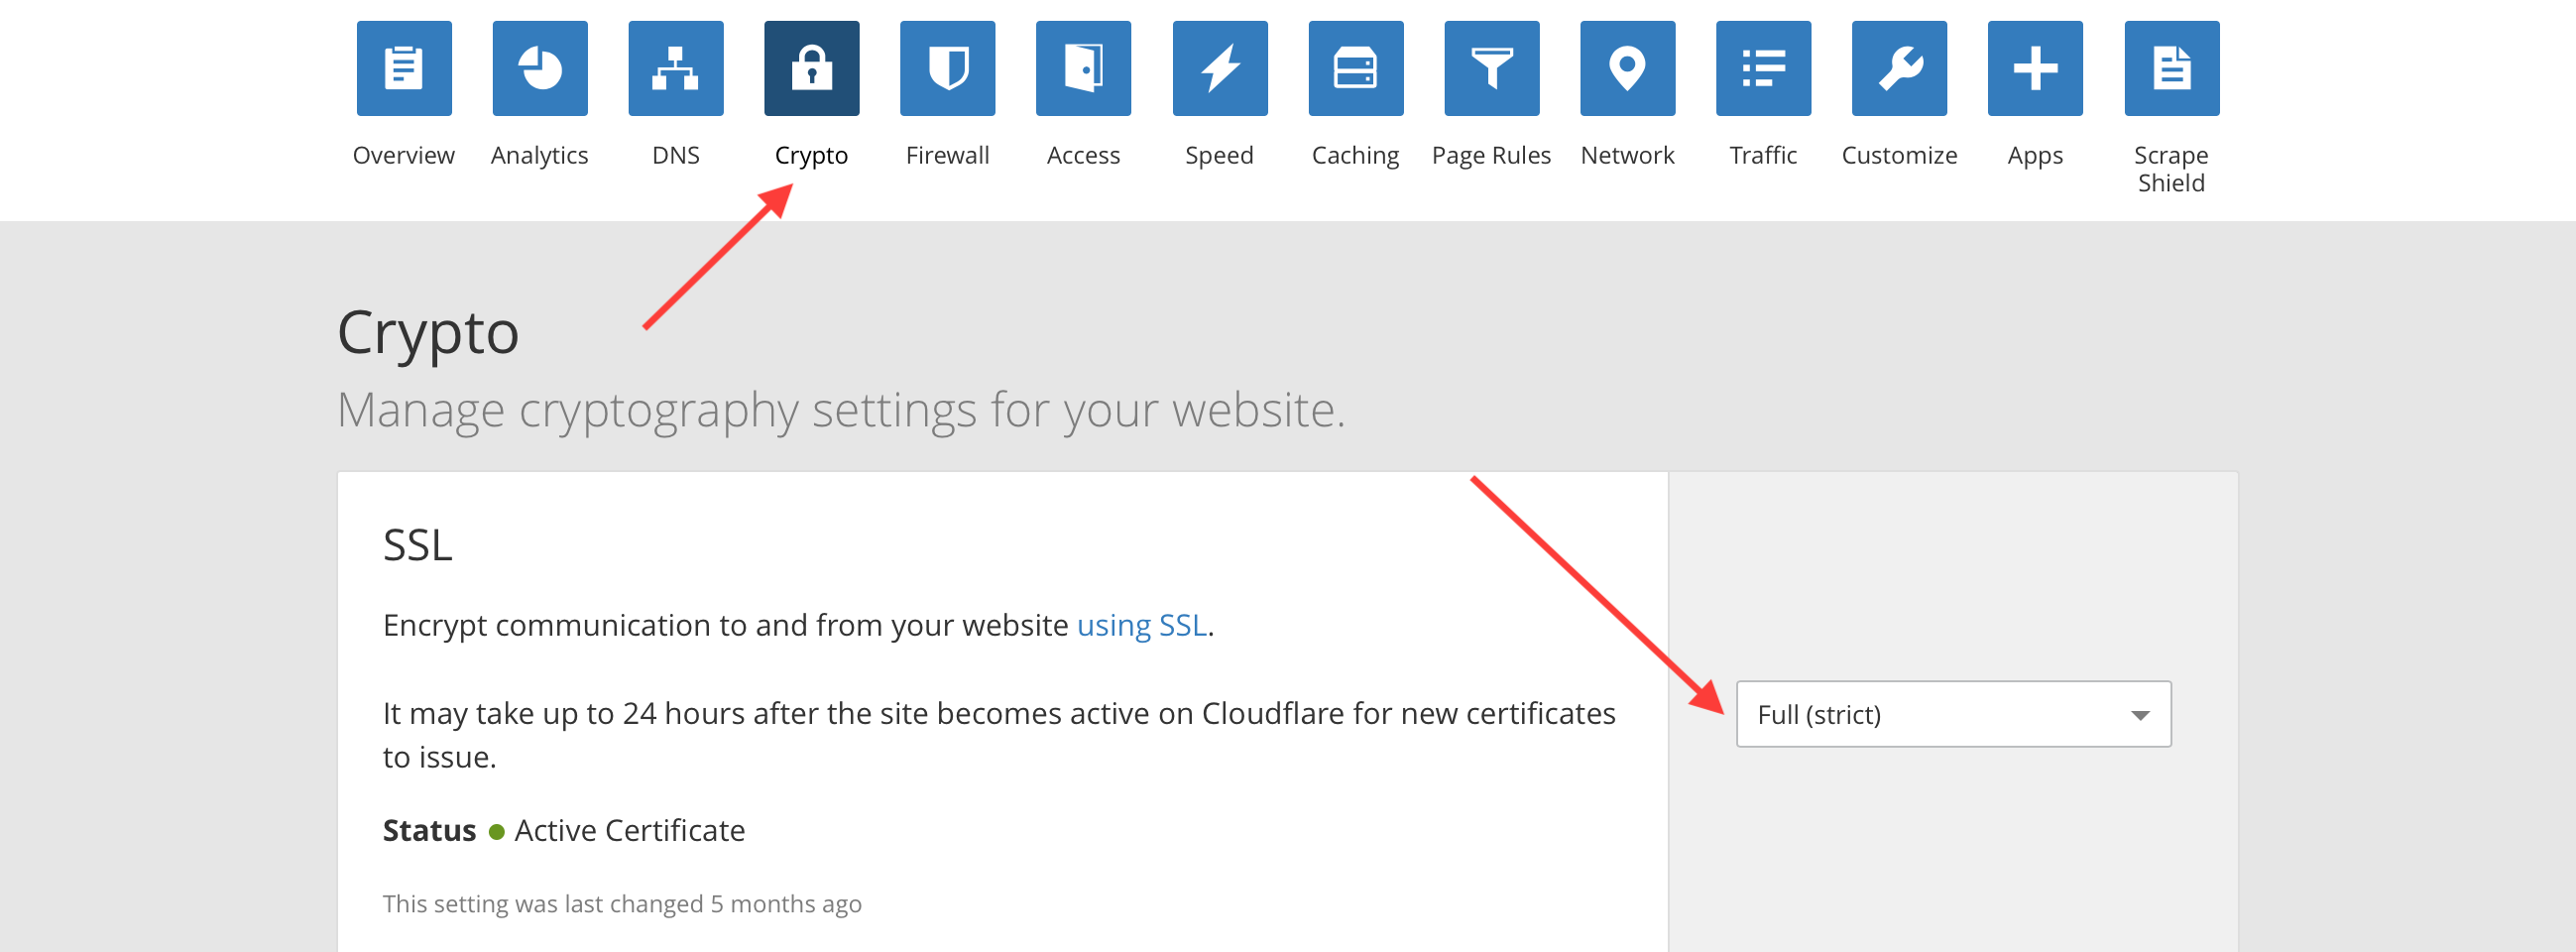 Make sure your Cloudflare SSL crypto settings are Full (Strict)